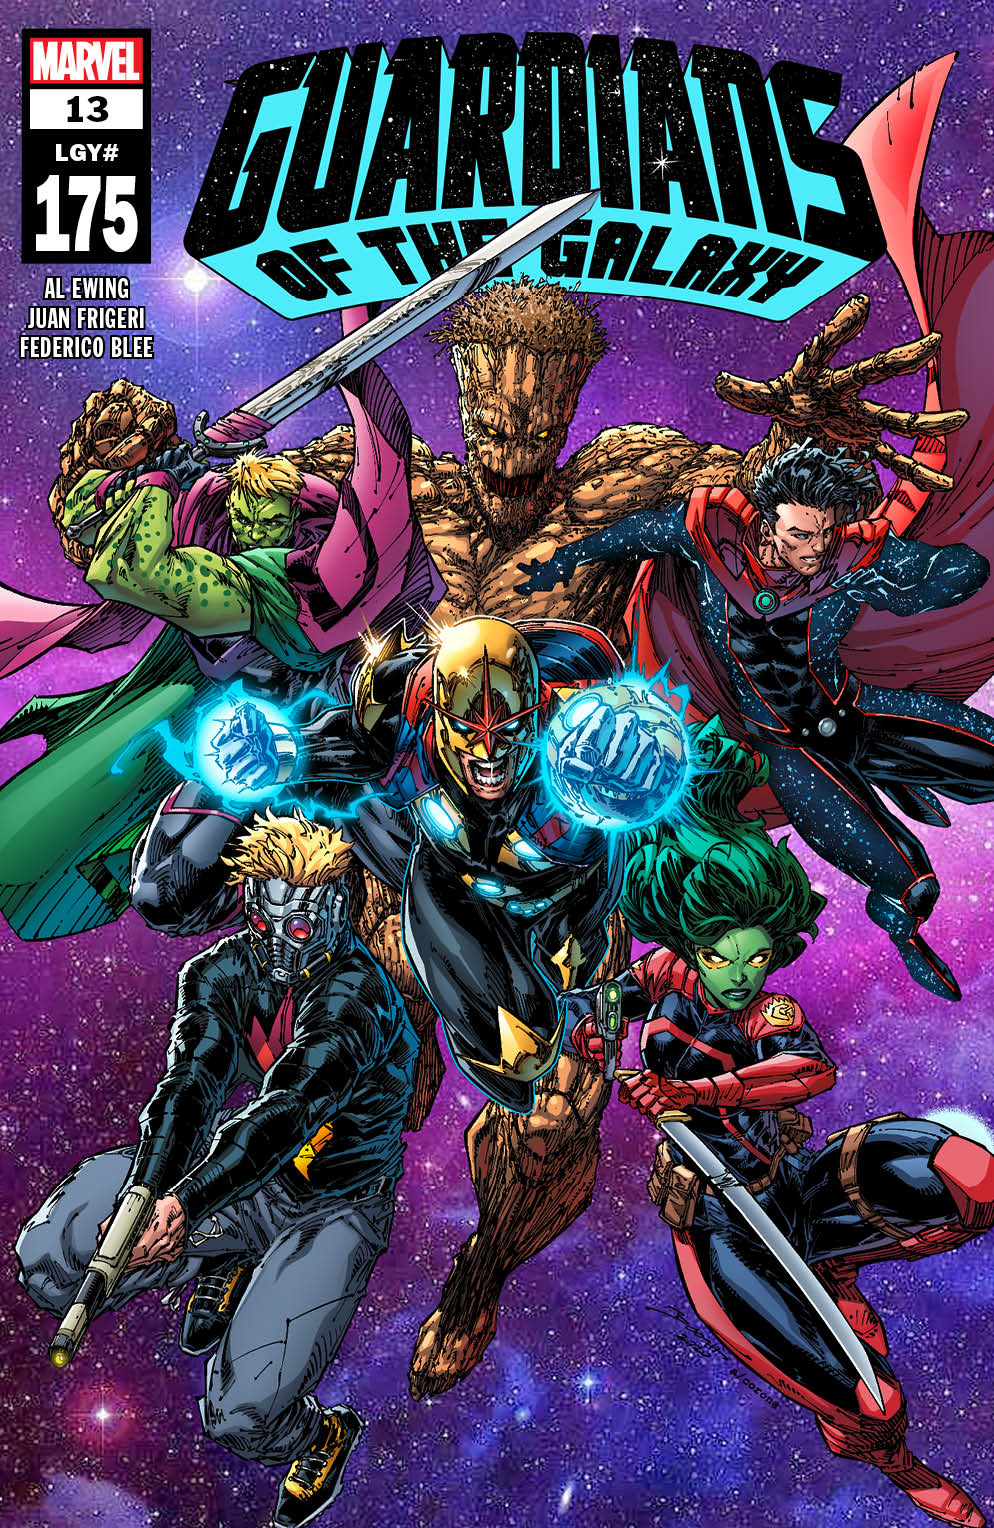 GARGAL2020013_Cover There's a plethora of new in the GUARDIANS OF THE GALAXY #13 trailer